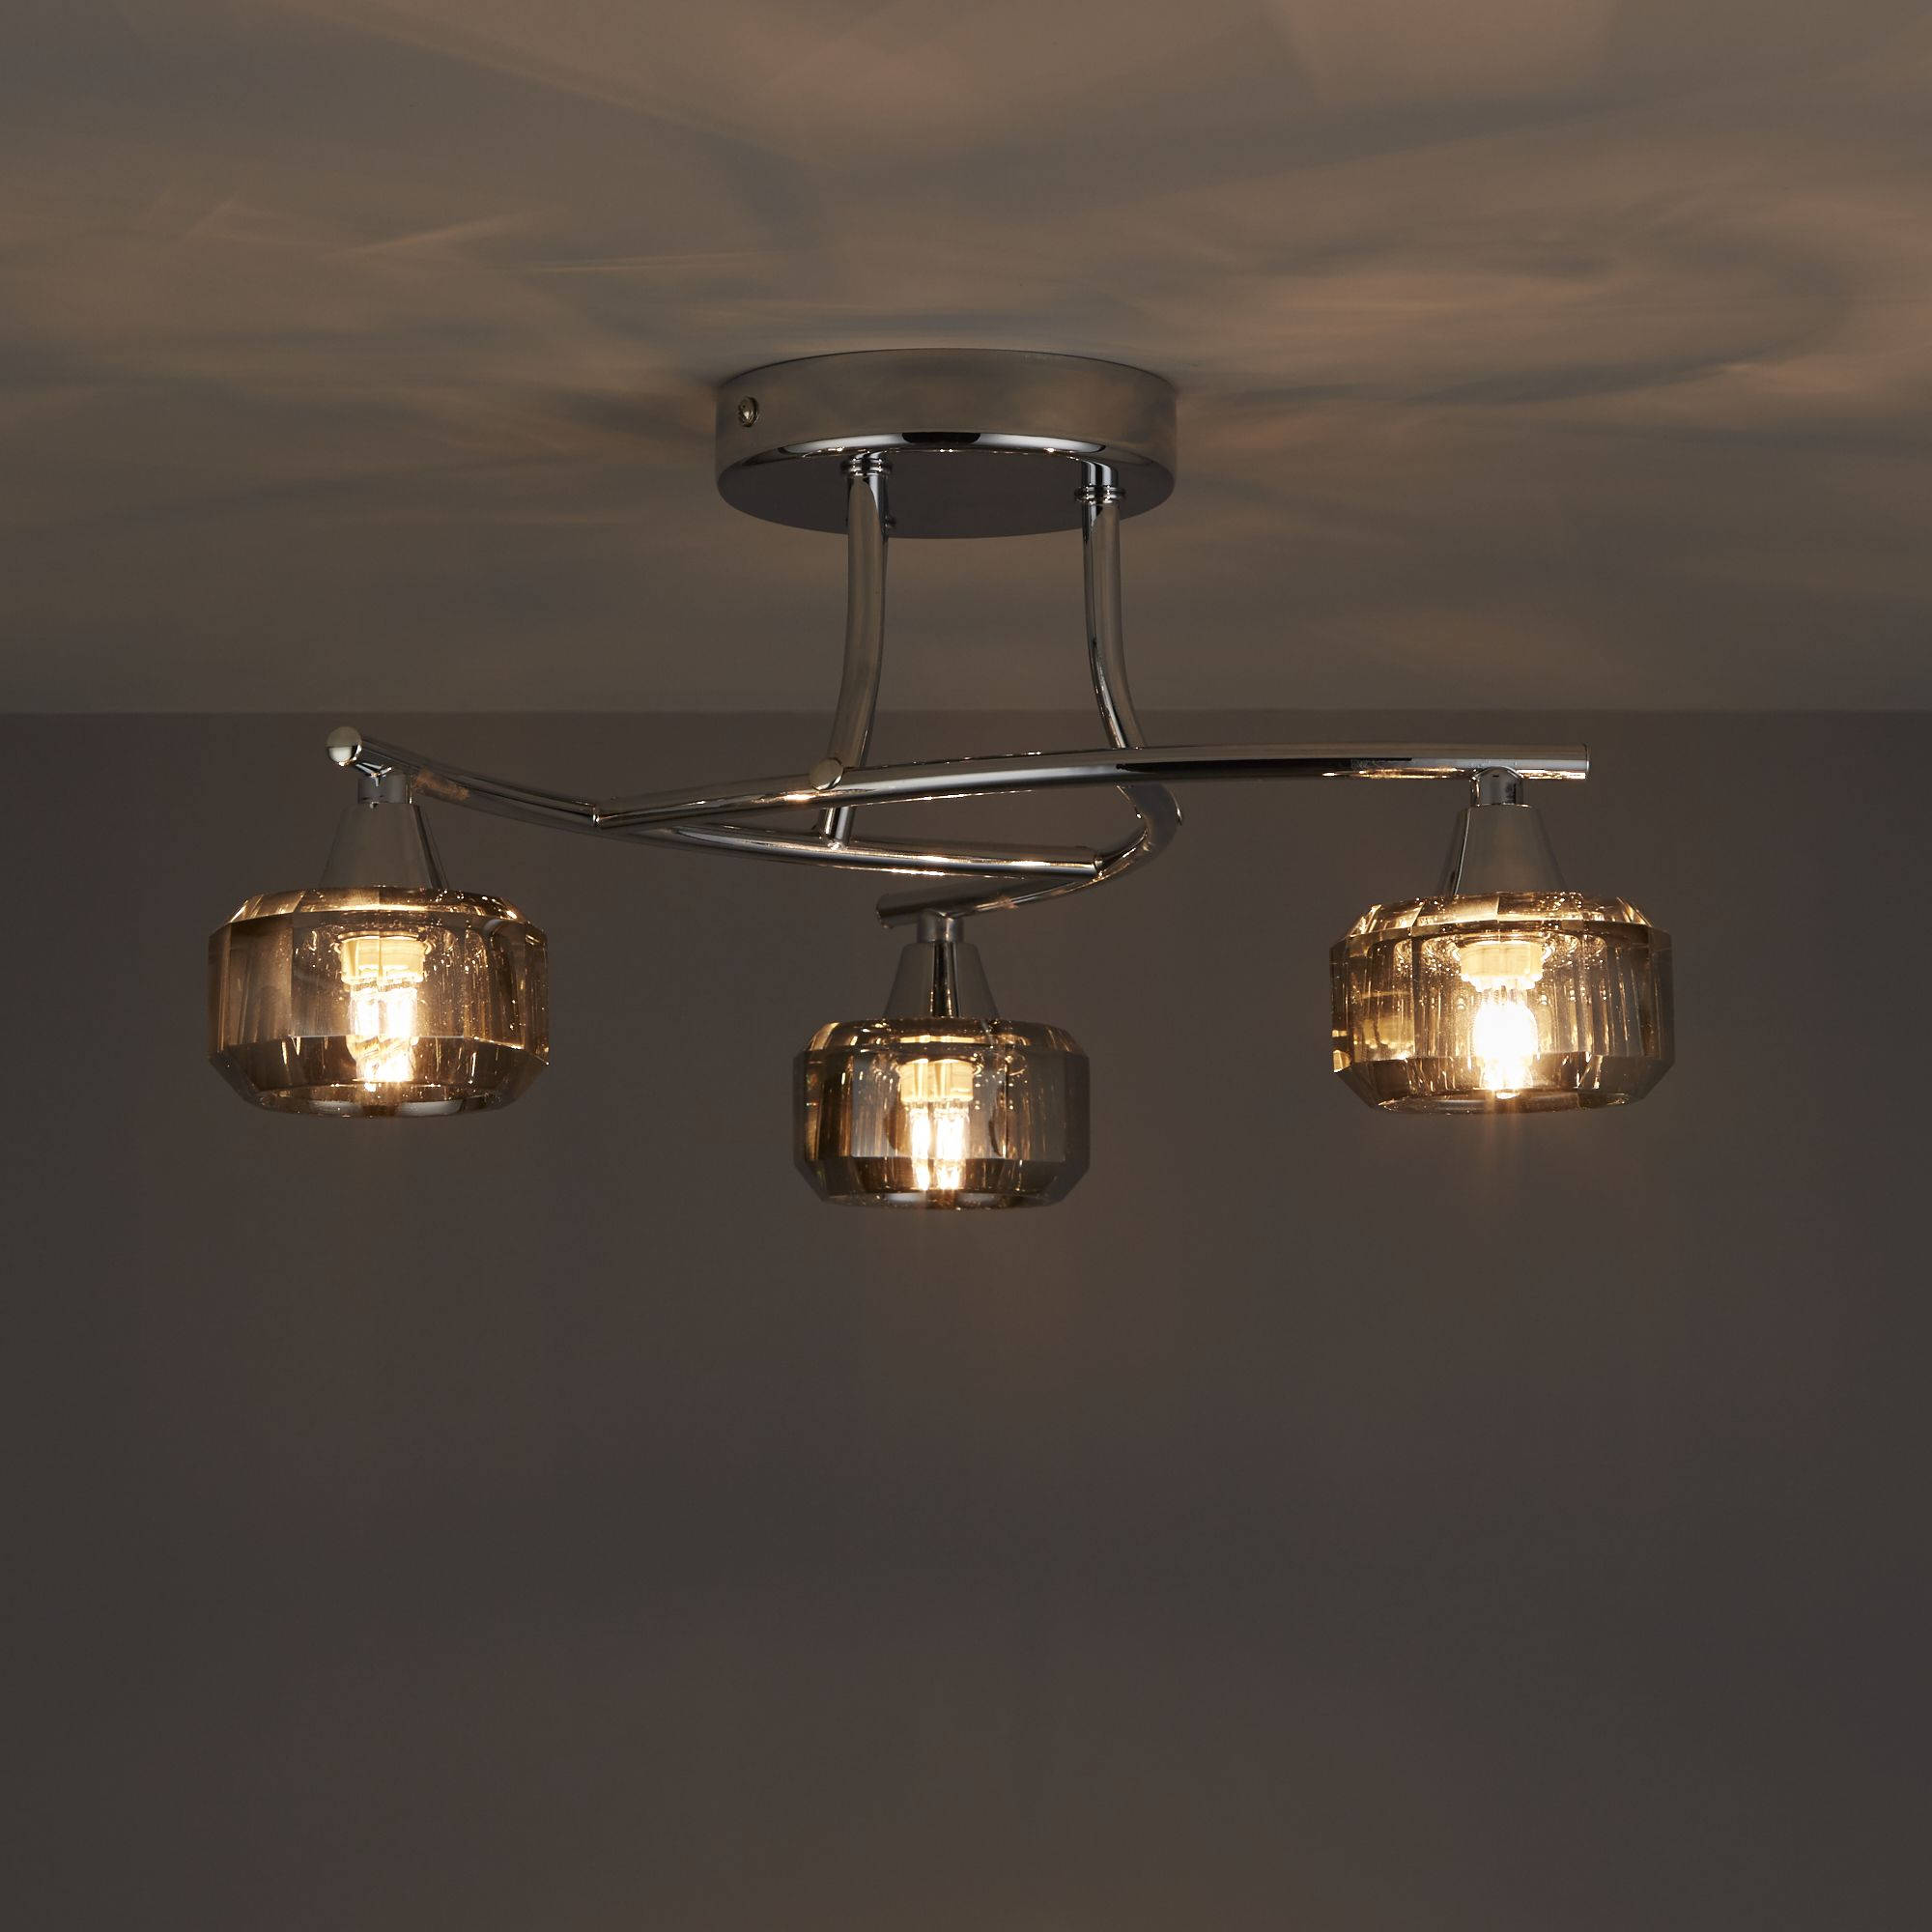 Allyn clear chrome smoked glass 3 lamp ceiling light departments allyn clear chrome smoked glass 3 lamp ceiling light departments diy at bq aloadofball Images